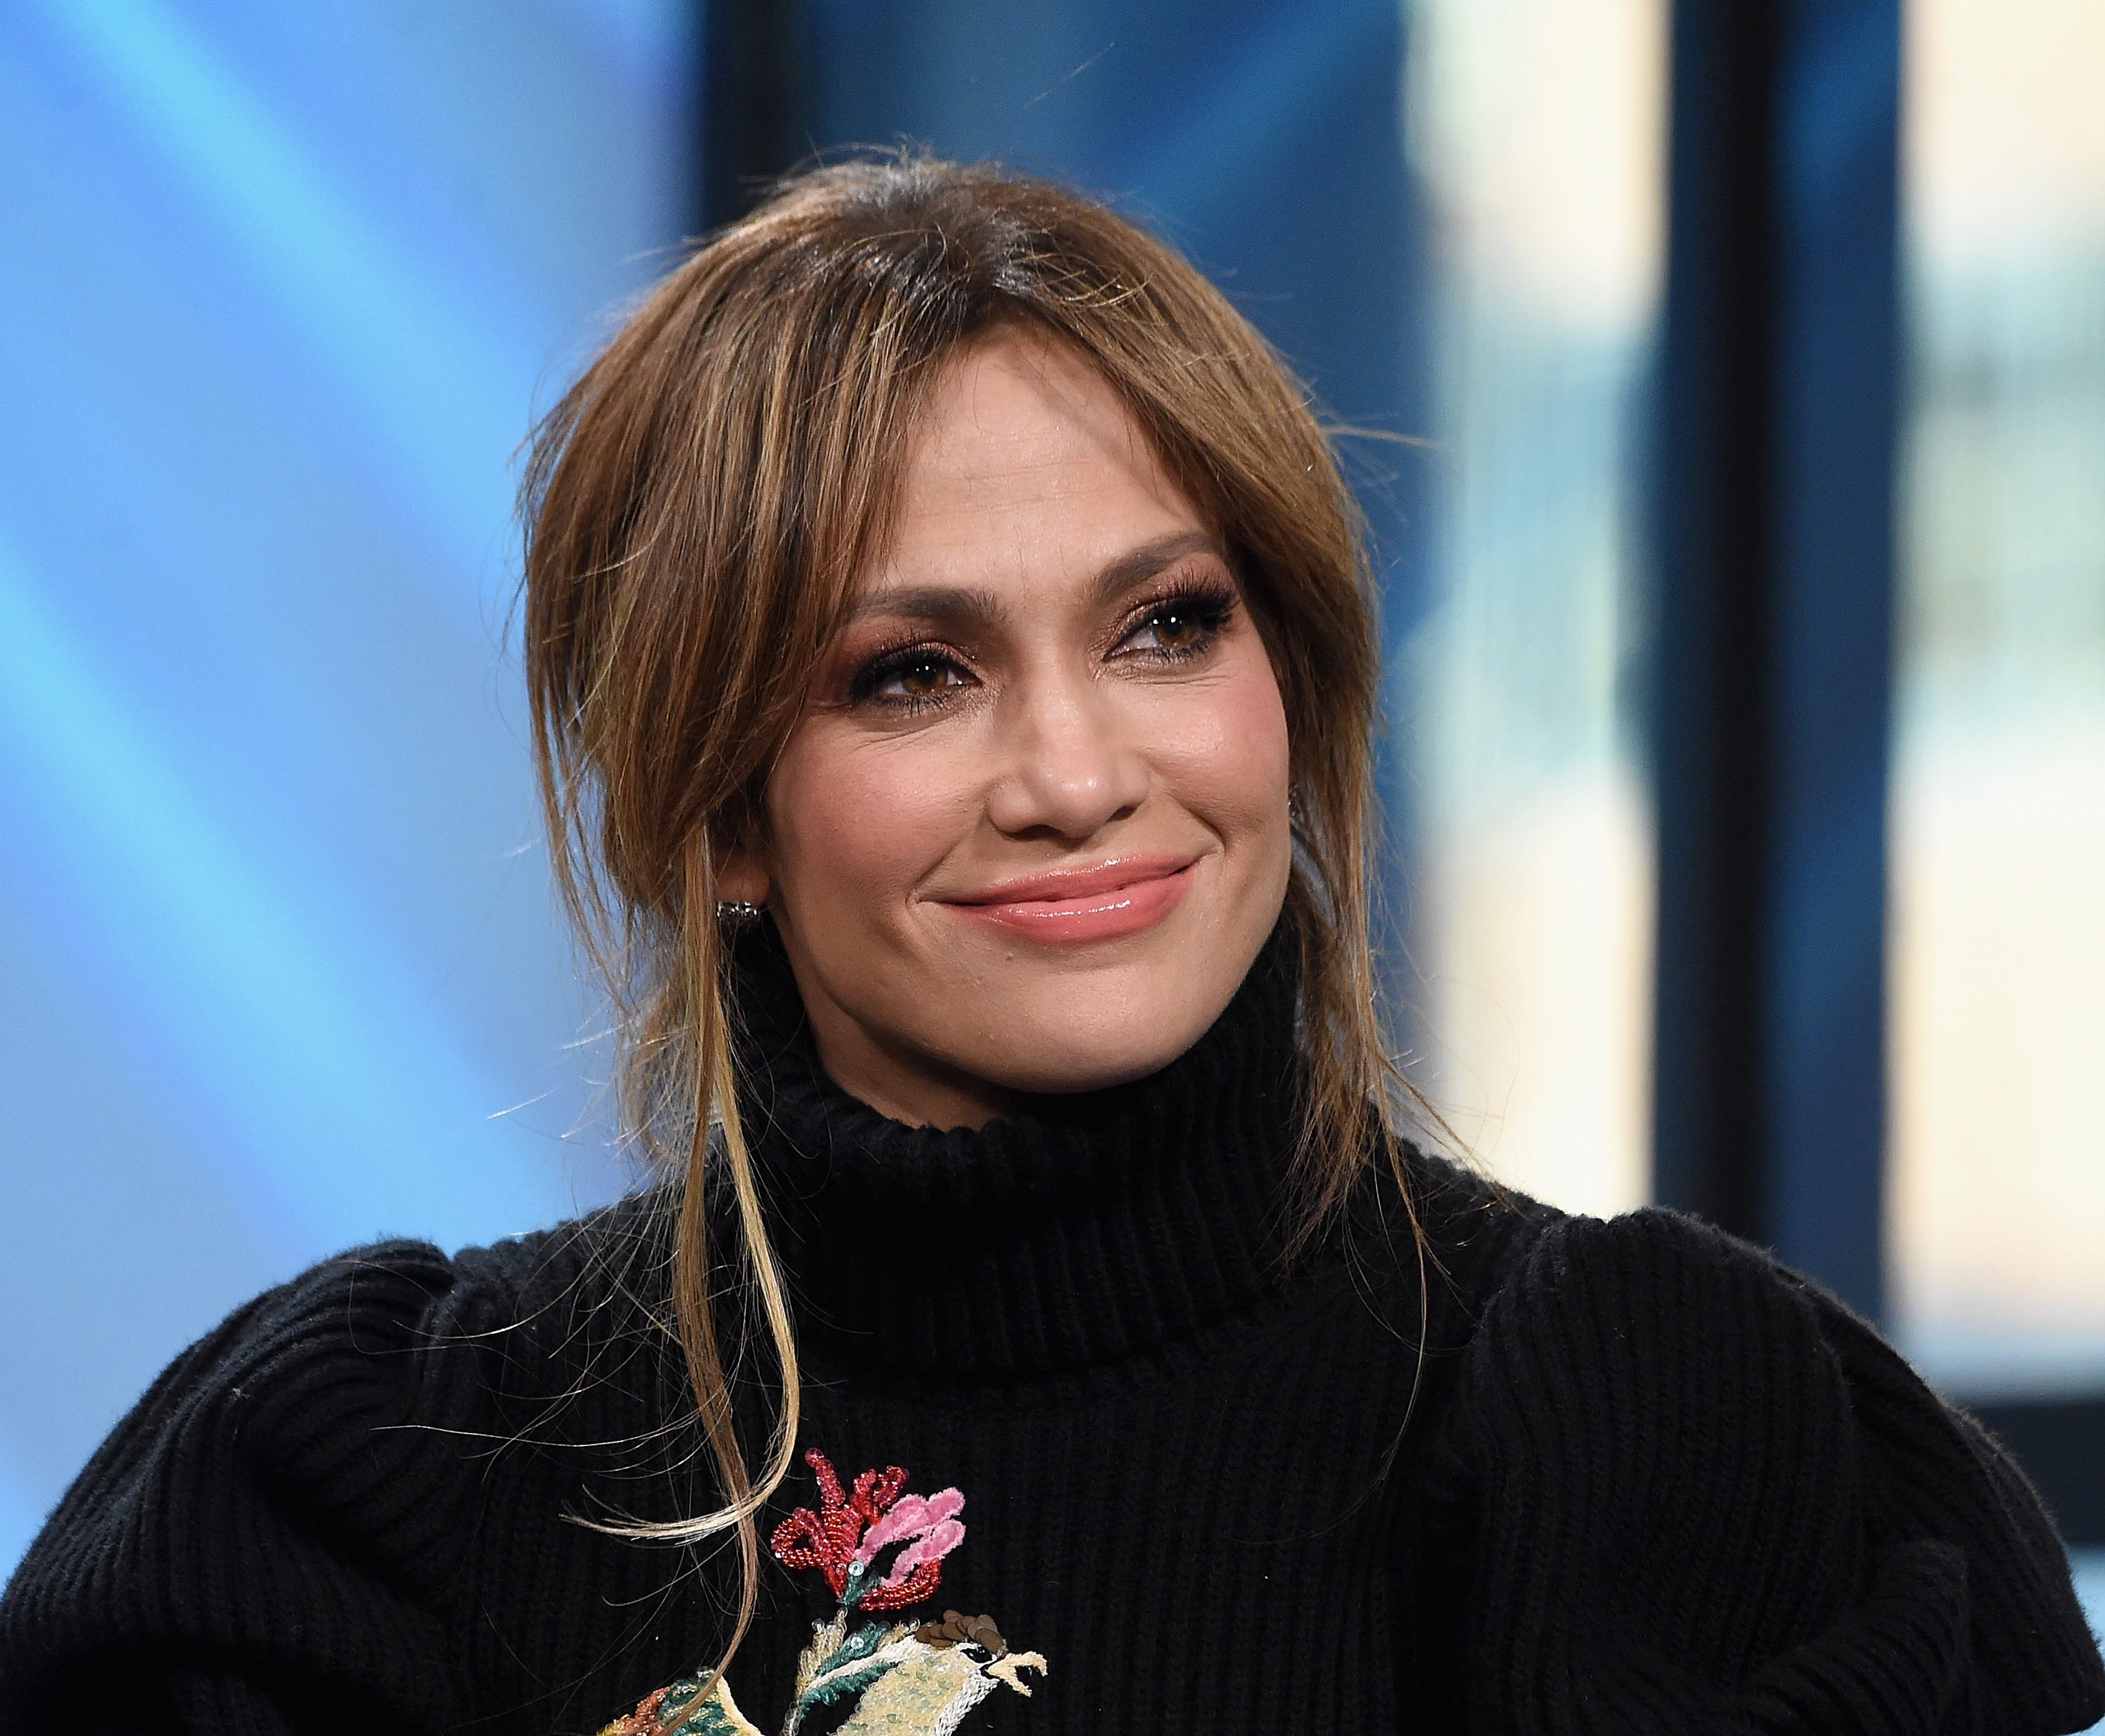 Jennifer Lopez, Salma Hayek, Rosario Dawson, America Ferrera and Others Create Legal Defense Fund for Victims of Sexual Harassment